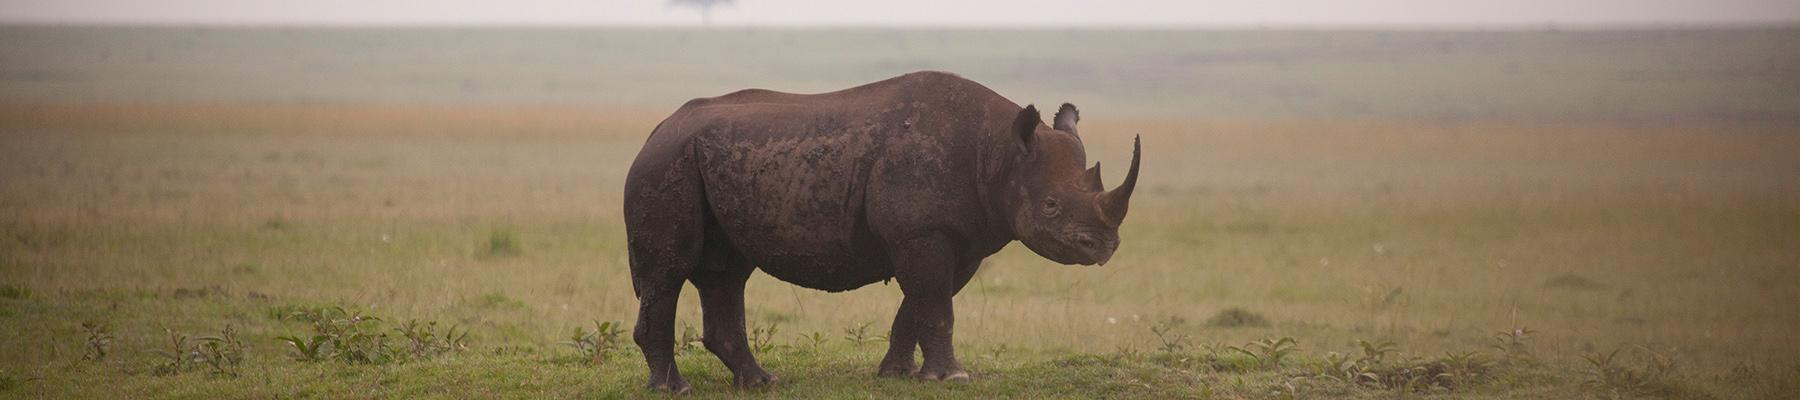 Black Rhino Diceros Bicornis, the more threatened of Africa's two rhino species © Richard Edwards / WWF-UK